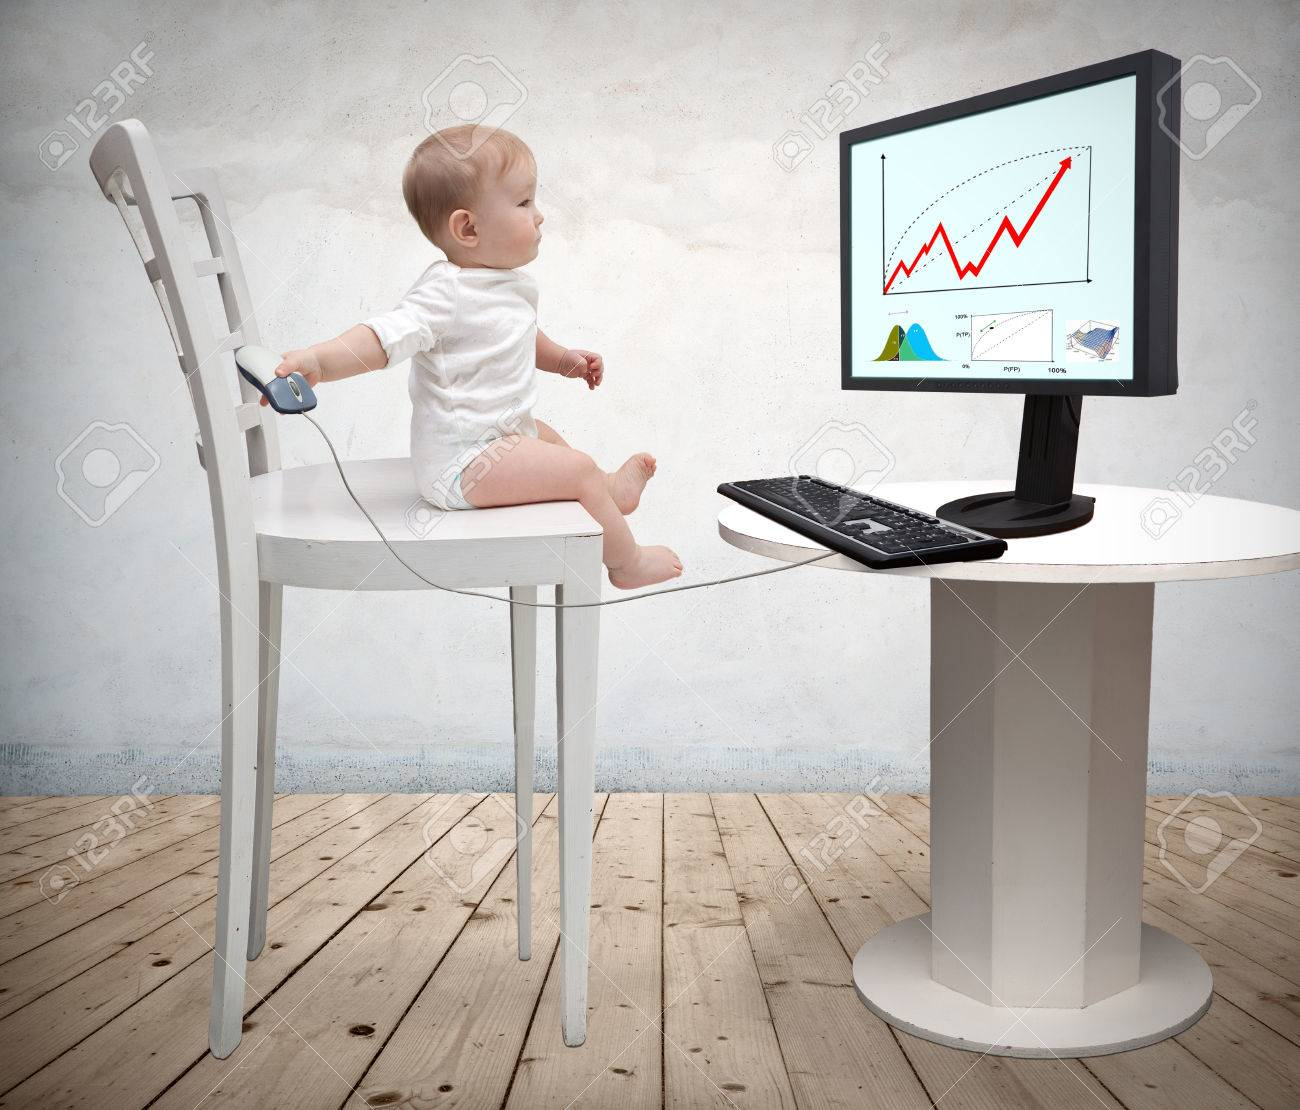 small child and a computer Stock Photo - 26717193